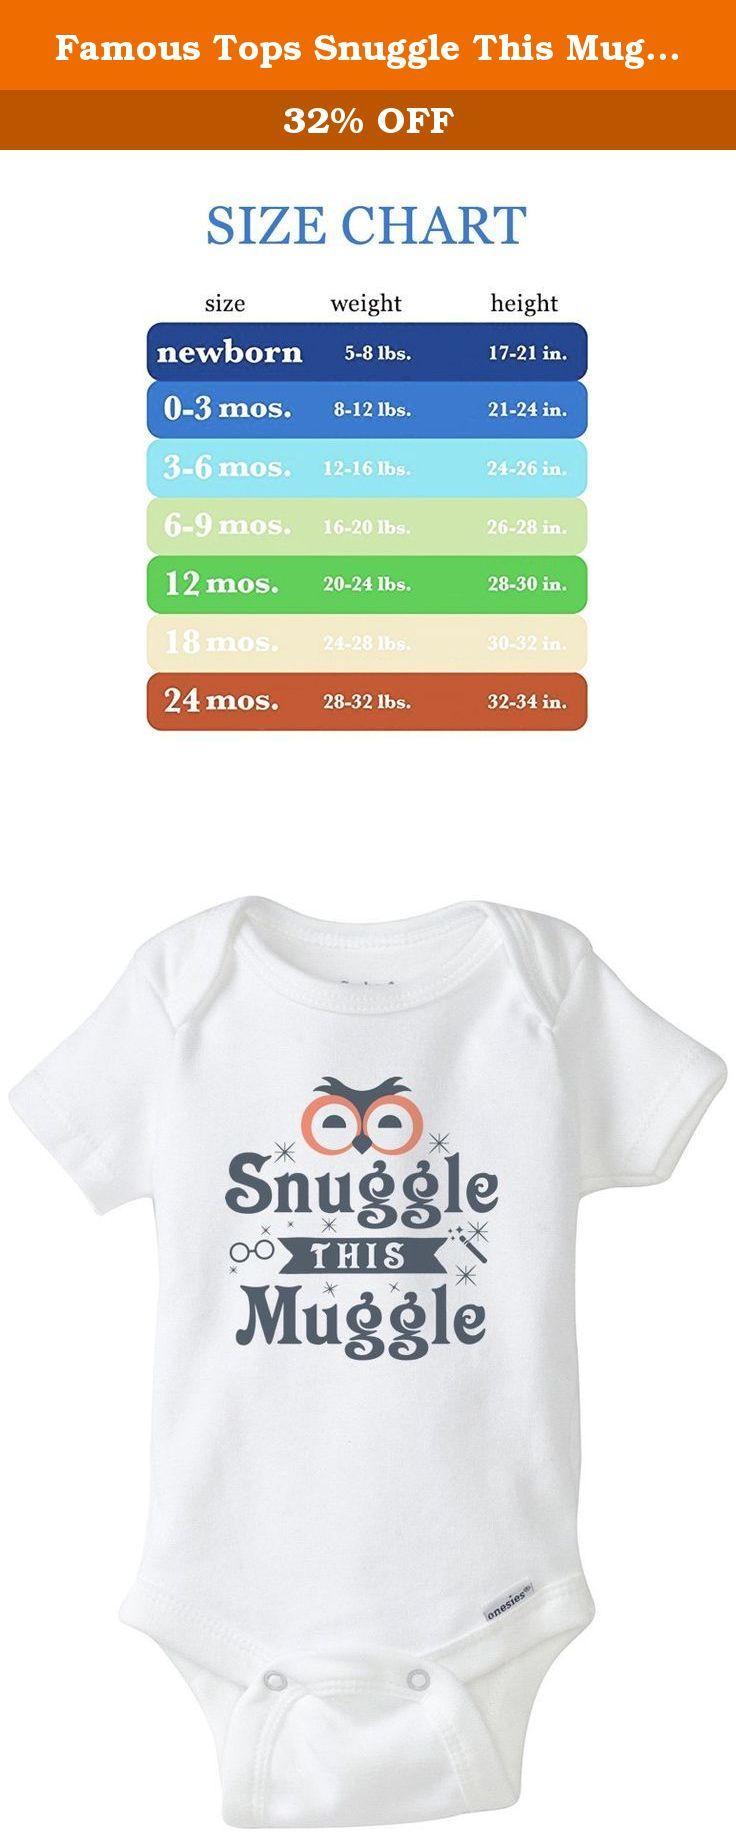 Famous Tops Snuggle This Muggle Harry Potter Unisex Baby Onesies for Boys and Girls - A1 24. Sizing: **Please see size chart for details. We always advise SIZING UP to the next size if you are unsure or between sizes as items often run snug, may shrink, and babies will grow into larger sizes. Newborn - 5 to 8 pounds, 17 to 21 inches 0-3 Months - 8 to 12 pounds, 21 to 24 inches 3-6 Months - 12 to 16 pounds, 24 to 26 inches 6-9 Months - 16 to 20 pounds, 26 to 28 inches 12 Months - 20 to 24...